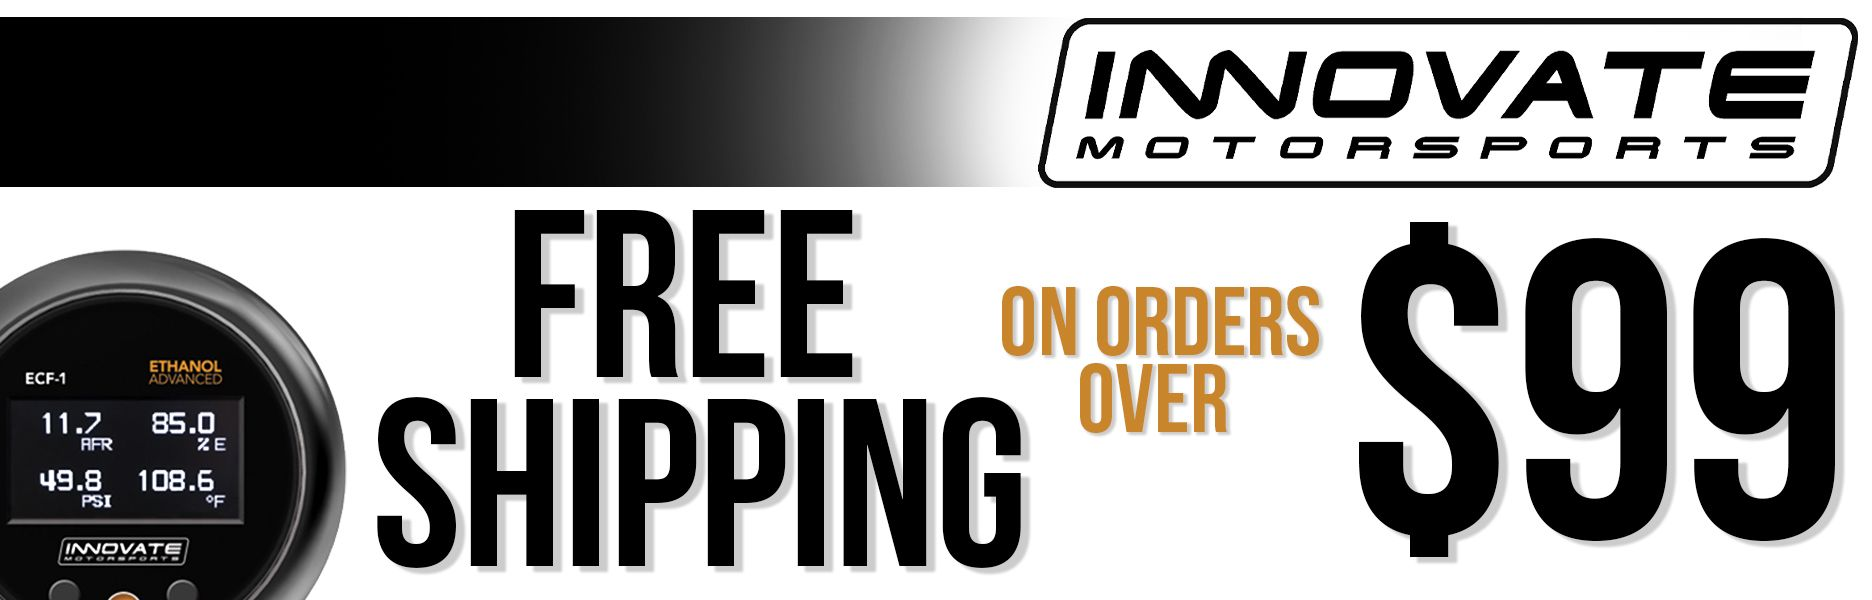 Innovate free shipping